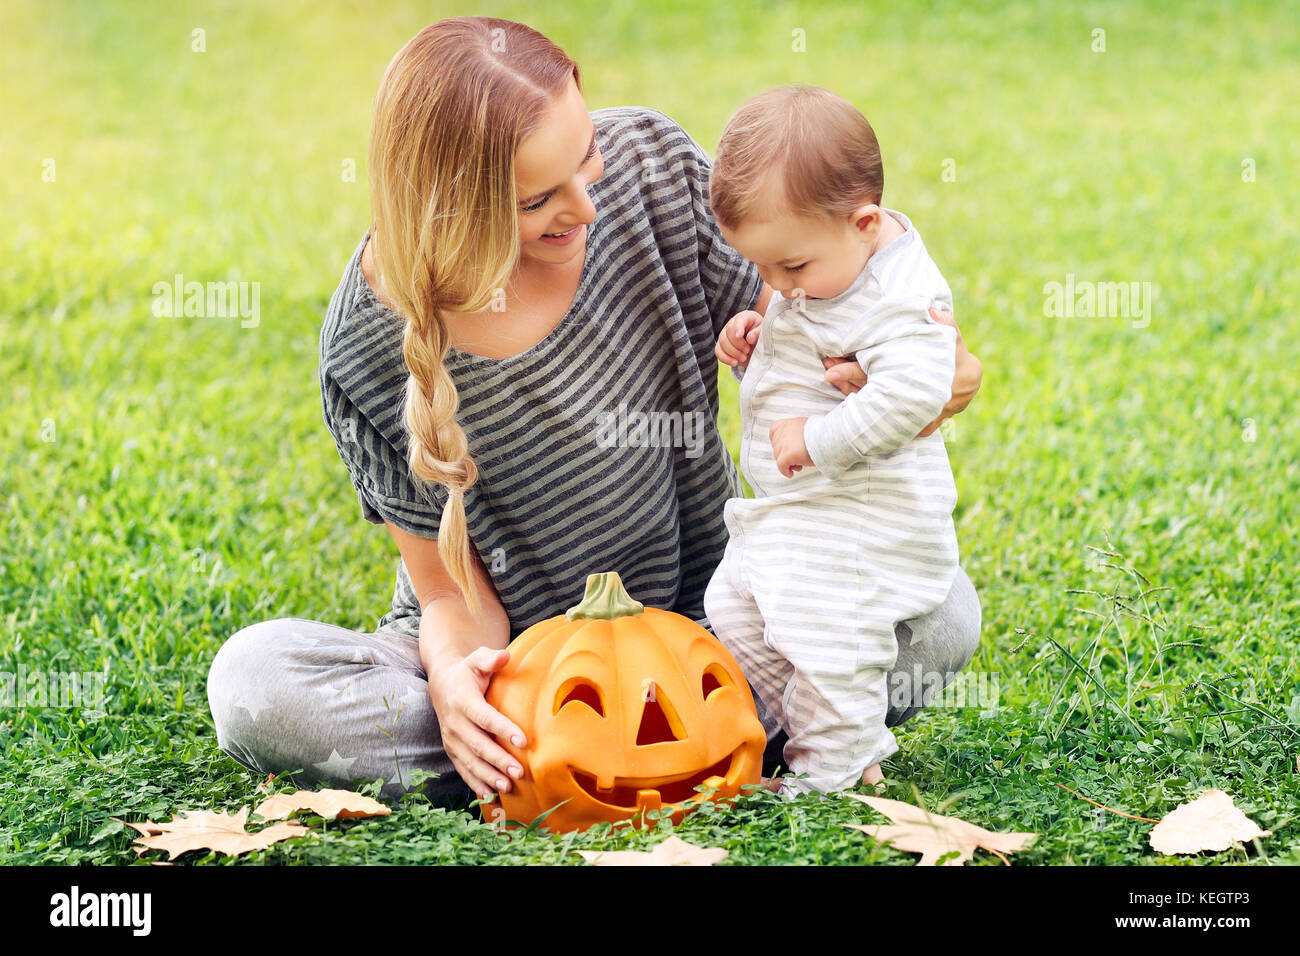 Happy family celebrating Halloween outdoors, mother with cute little baby boy playing with carved pumpkin on the - Stock Image